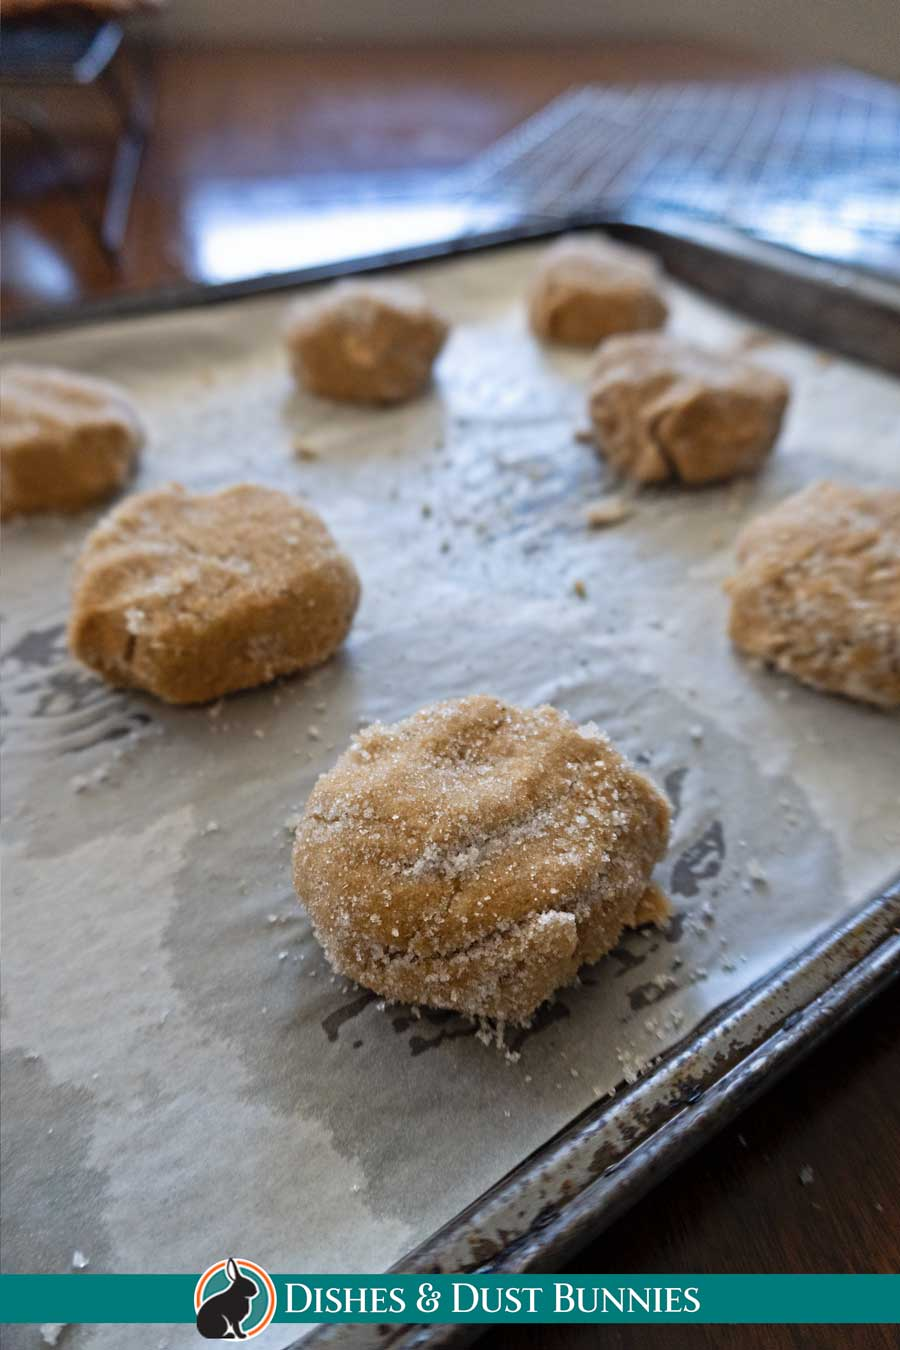 Ginger Sparkle Cookies - the dough on the baking sheet before baking